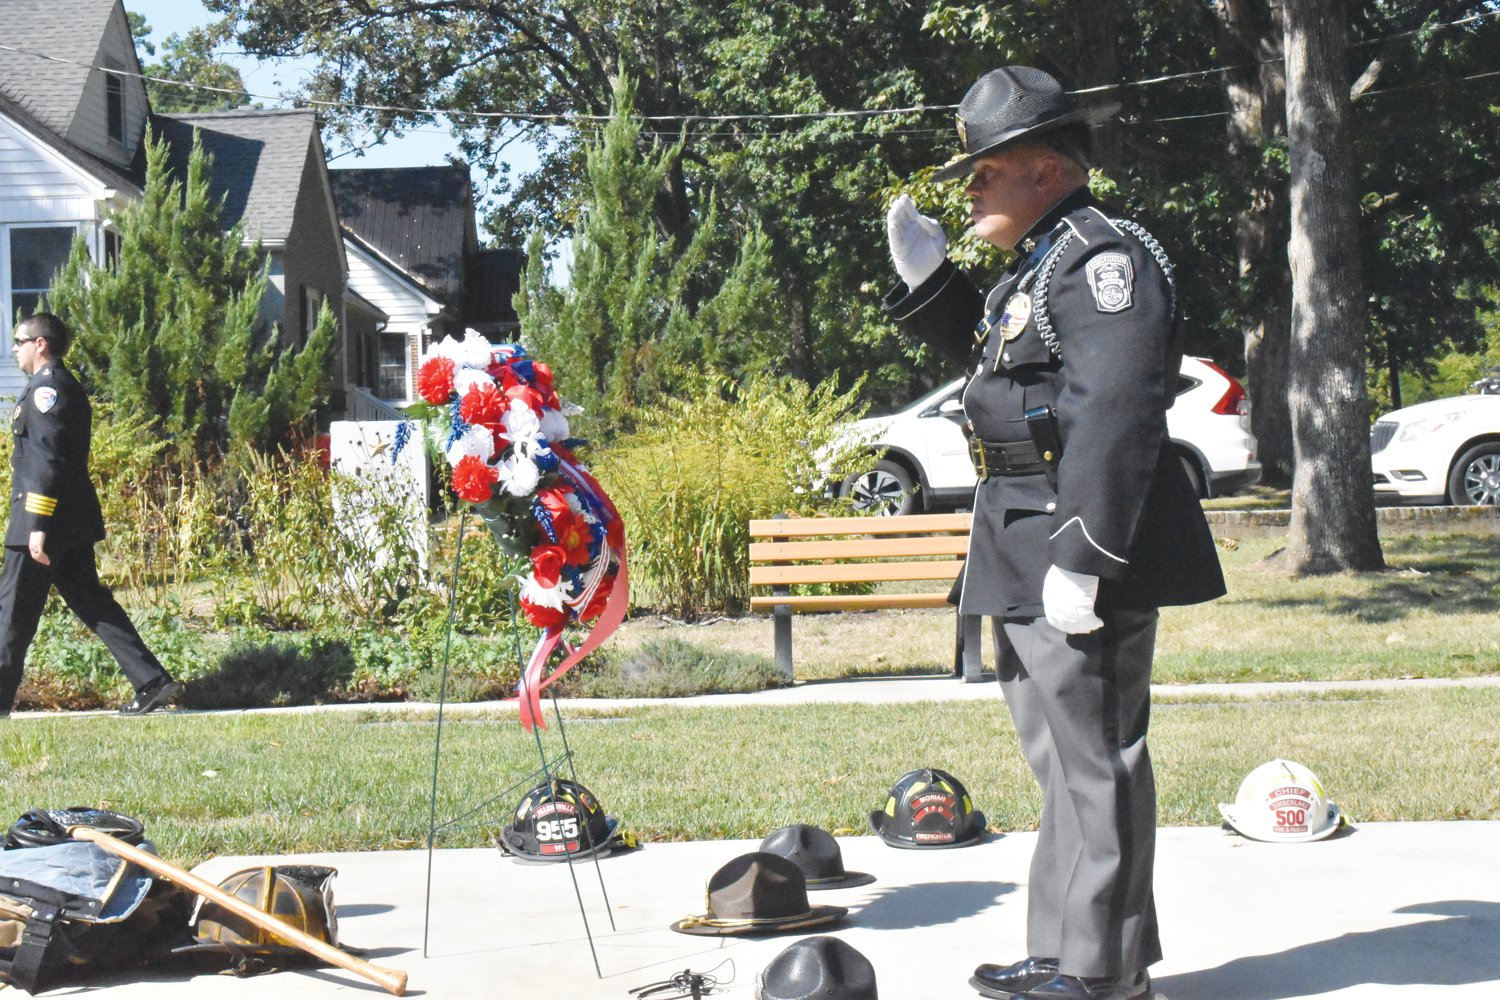 Roxboro Police Lt. Dan Walker salutes after laying a police cap on the ground in front of a wreath during Saturday's Patriot's Day observance.